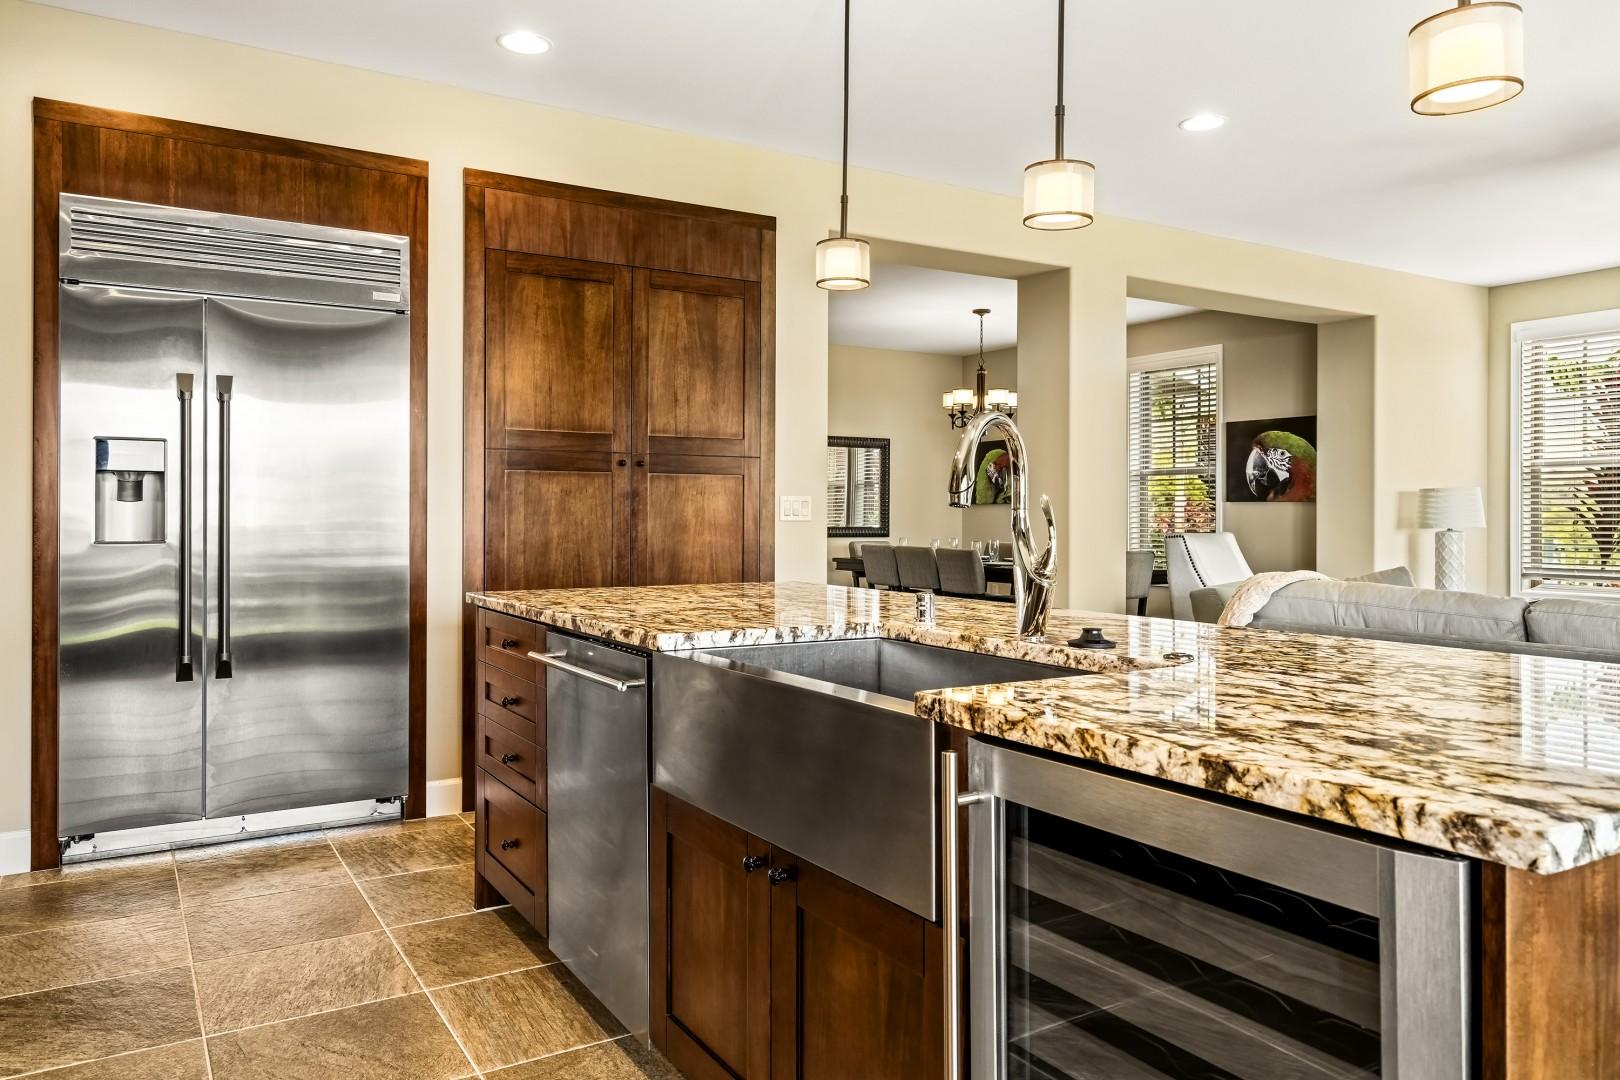 High end stainless appliances!